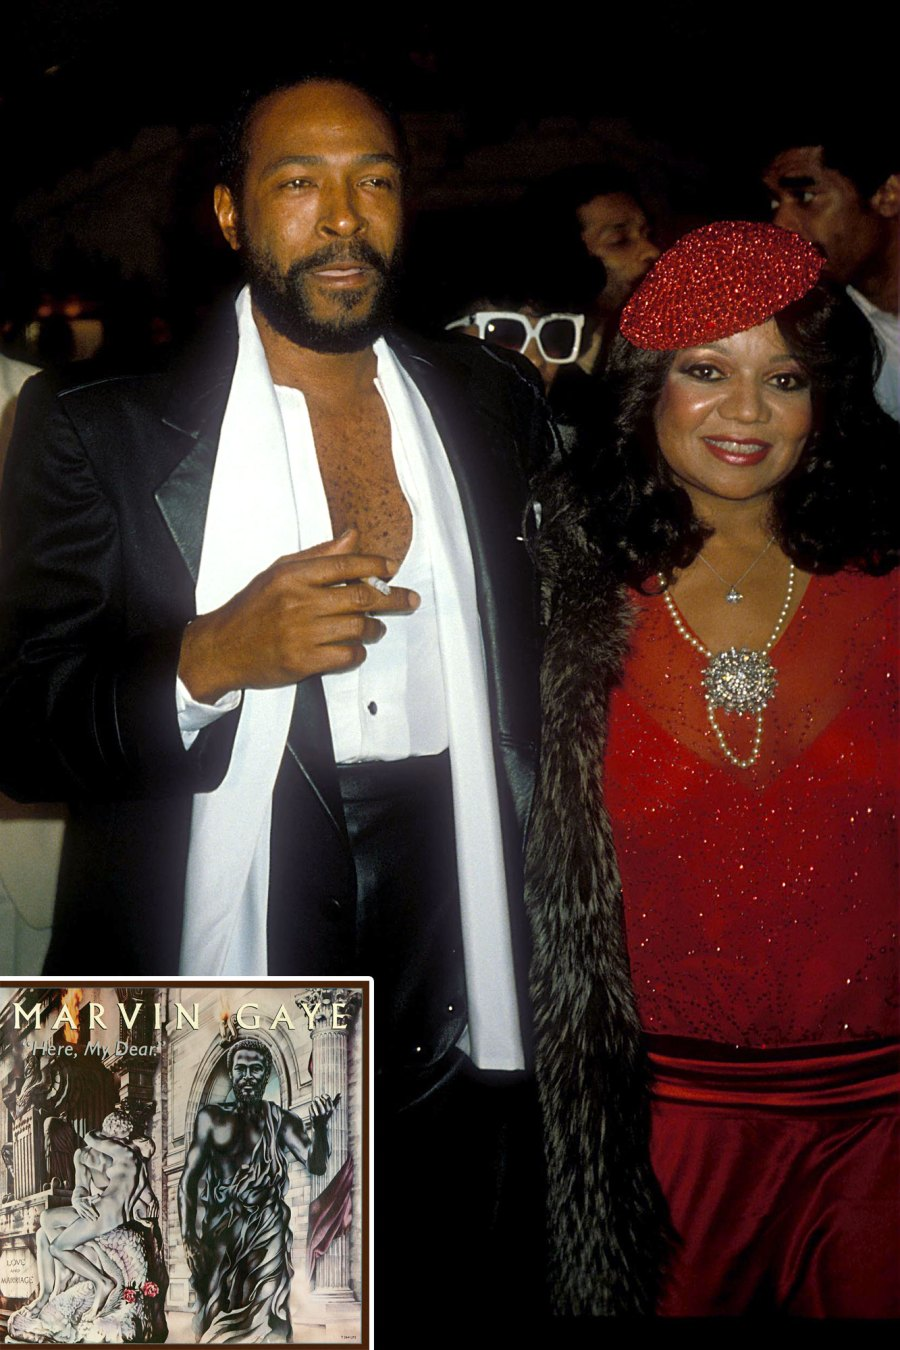 Marvin Gaye Here My Dear Anna Gordy Gaye Albums Dedicated to Significant Others